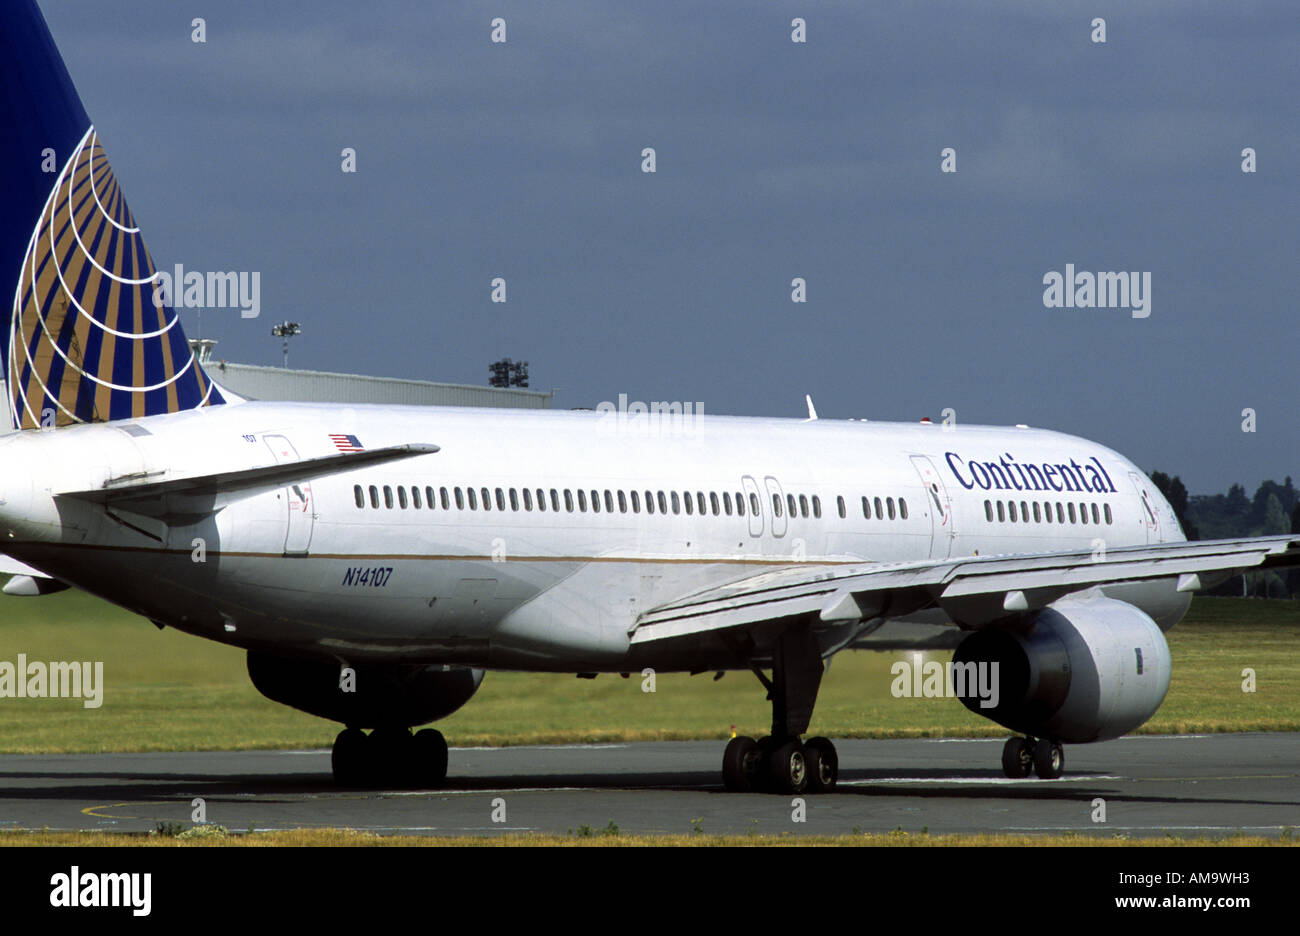 Continental Airlines Boeing 757 about to take off at Birmingham International Airport, West Midlands, England, UK - Stock Image